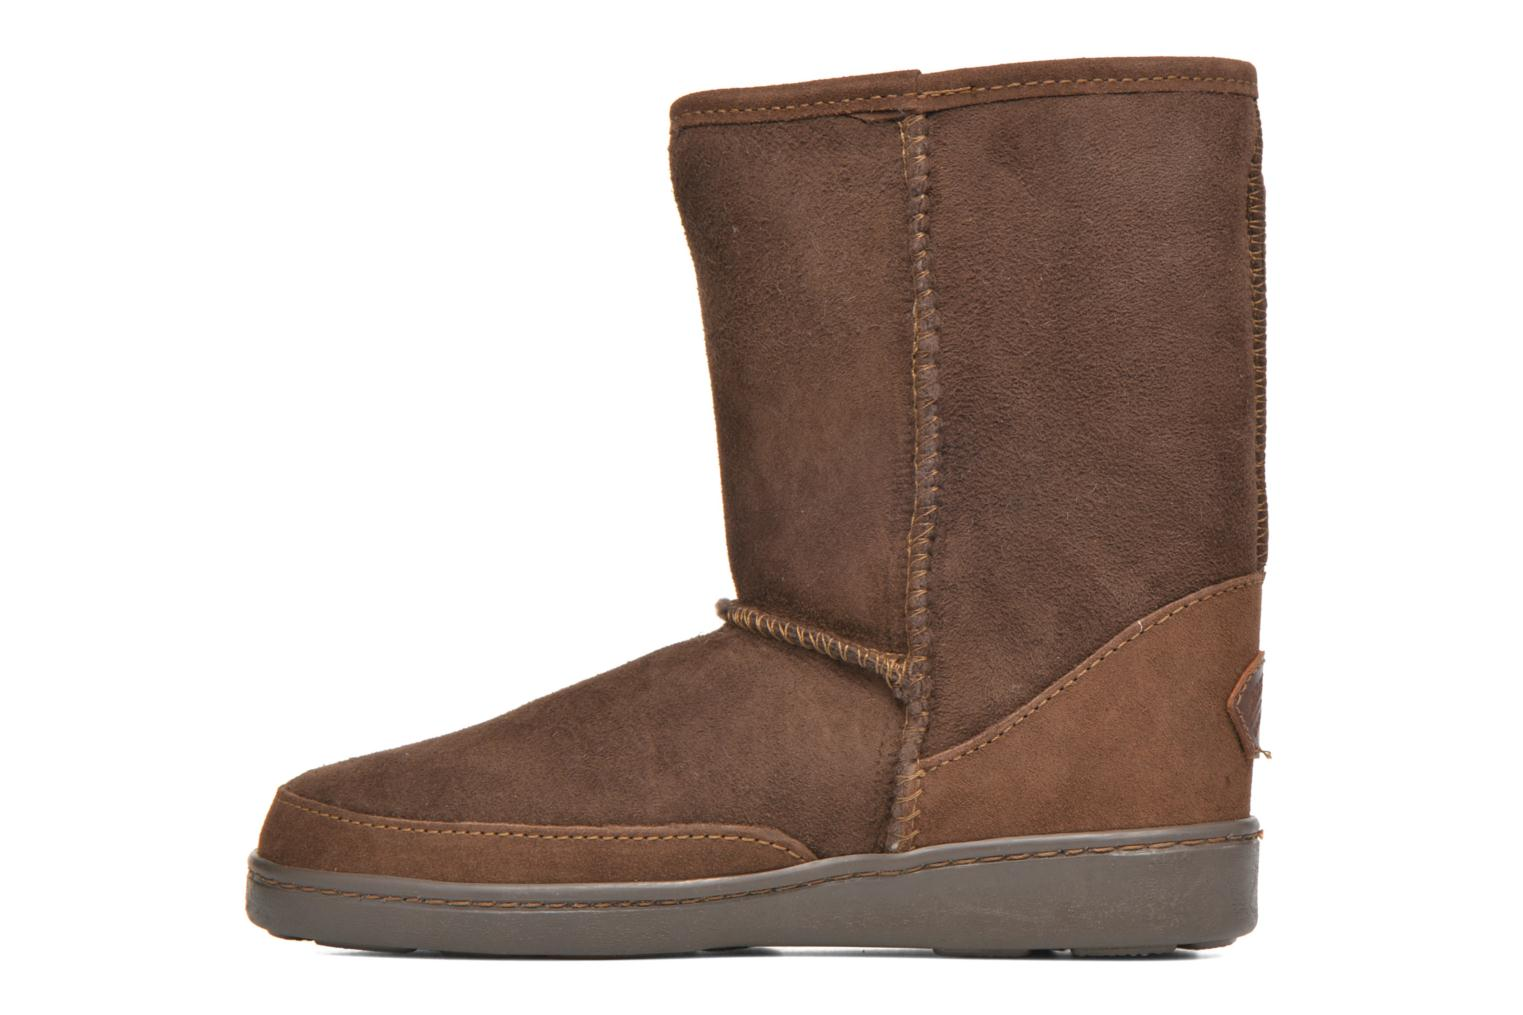 Bottines et boots Minnetonka Short Sheepskin Pug Boot W Marron vue face